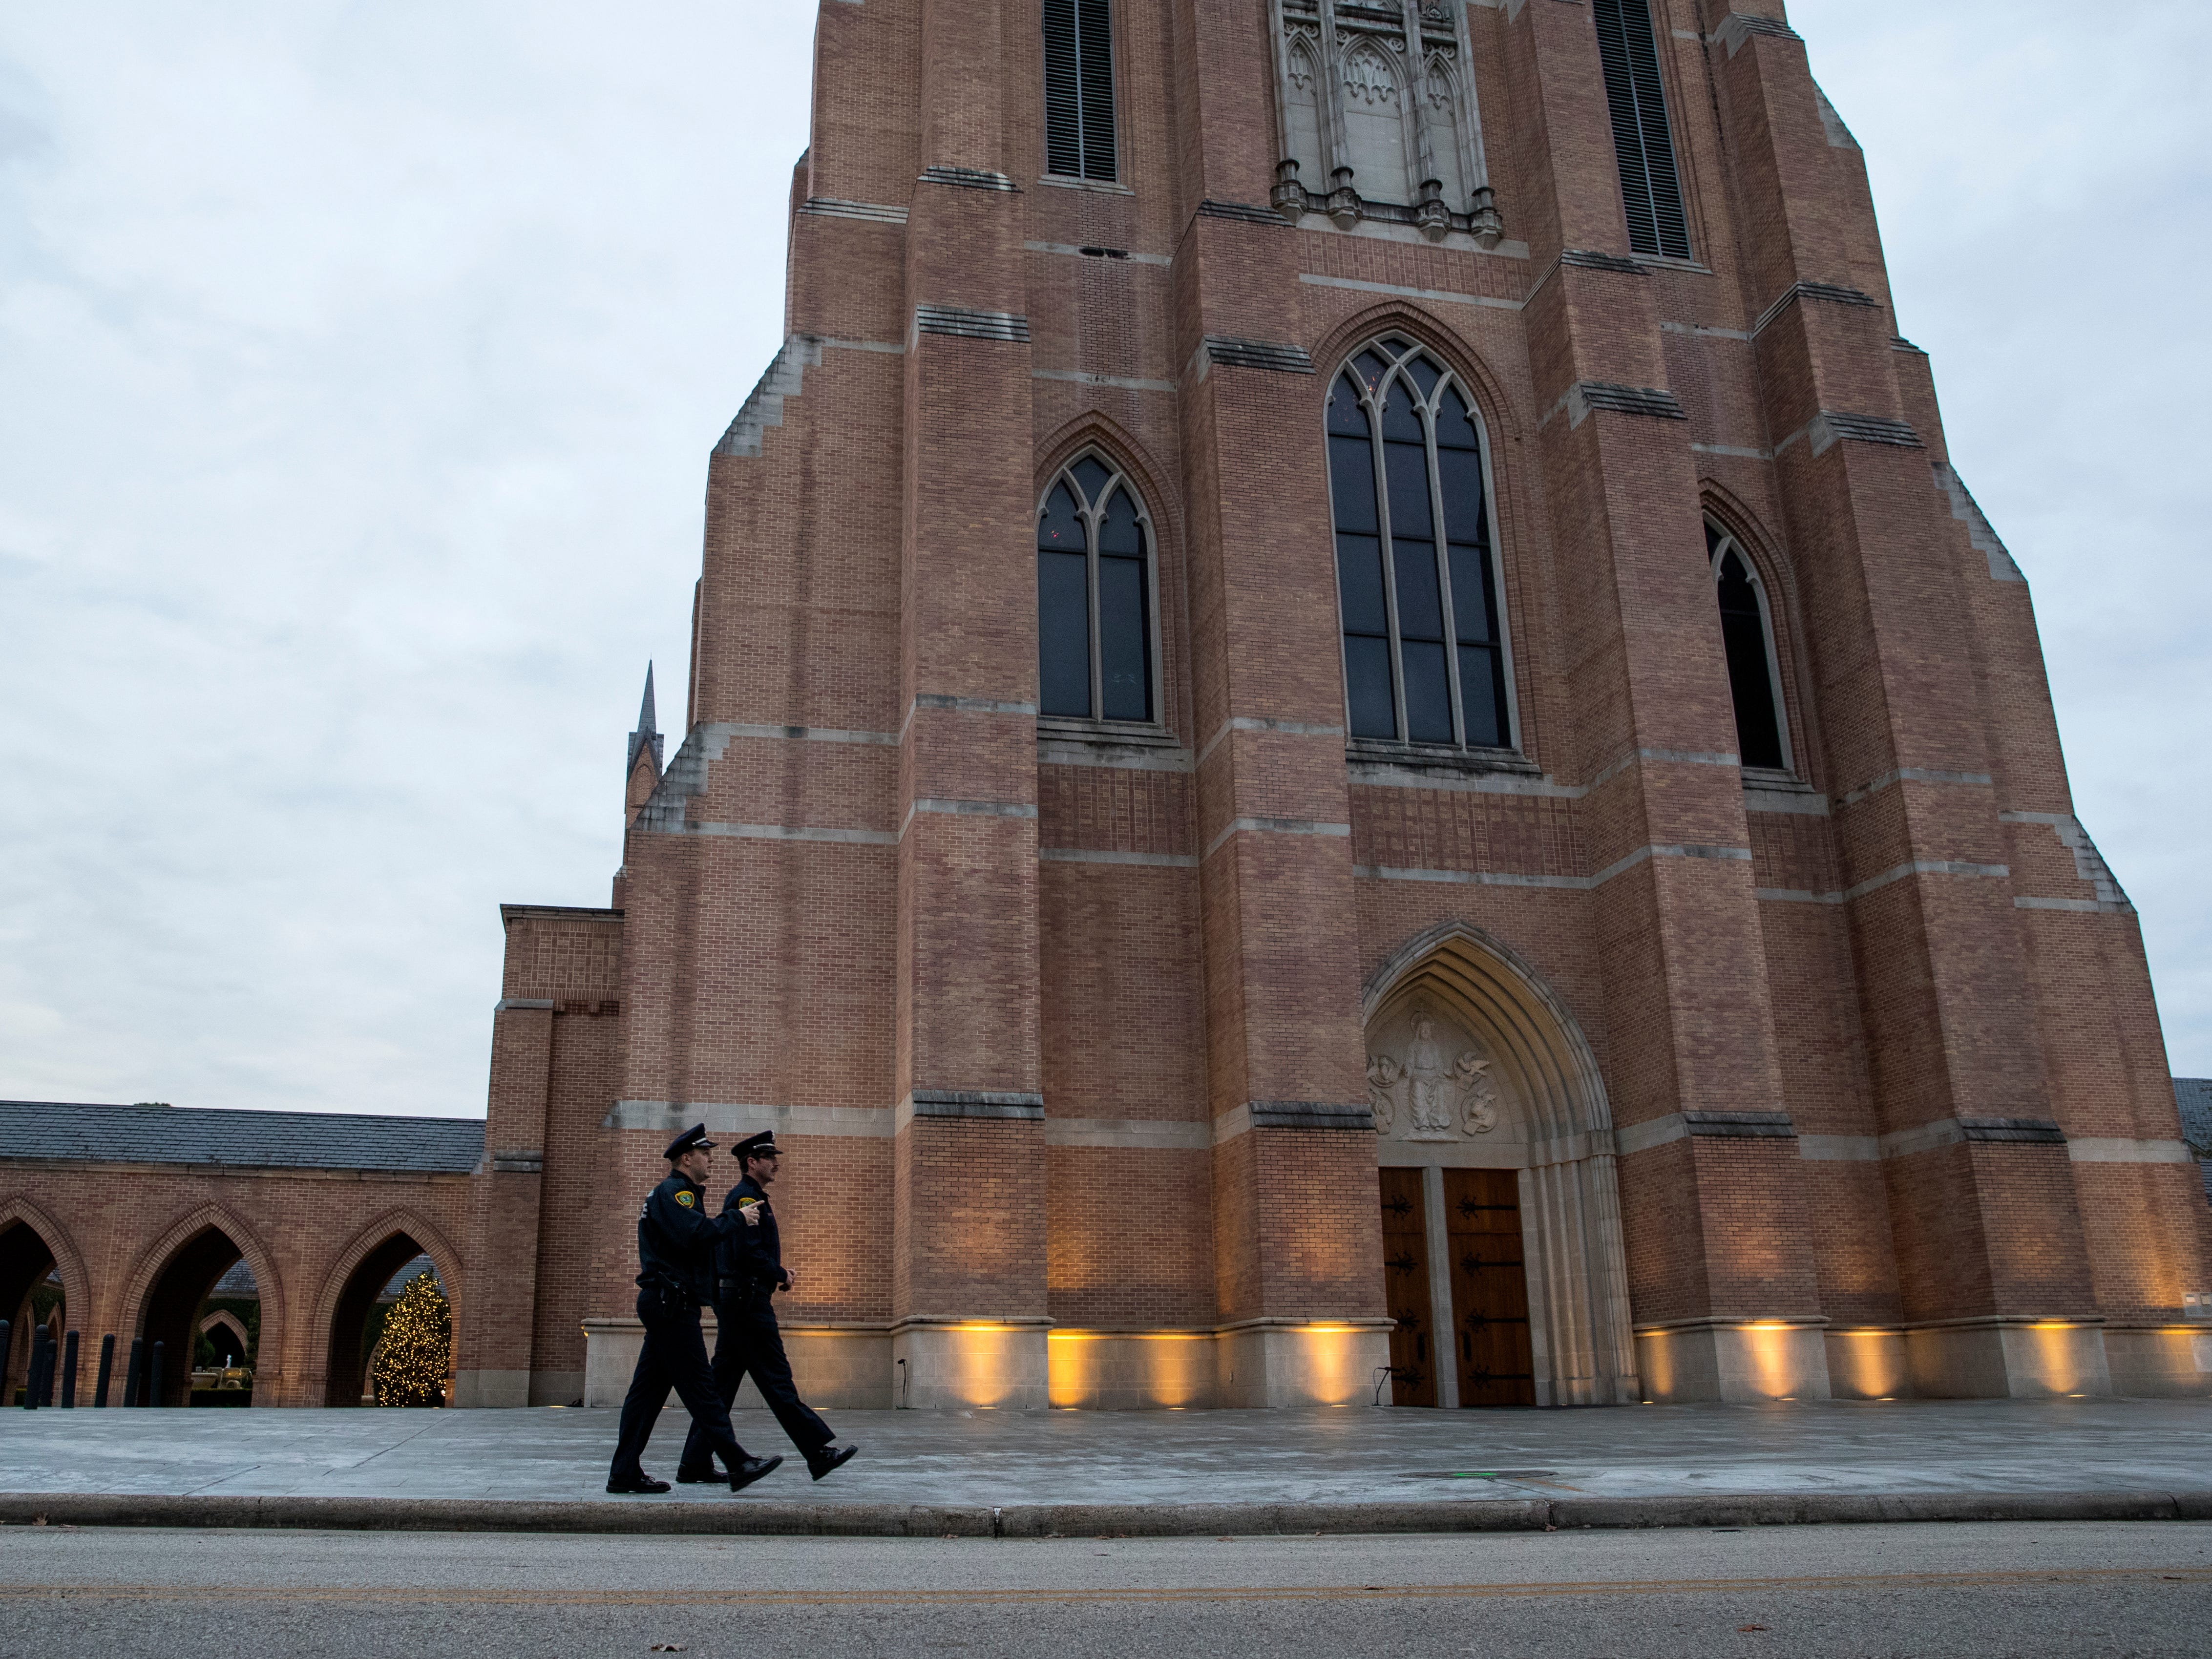 Former President George H.W. Bush's Funeral Service was held on Thursday, Dec. 6, 2018, at St. Martin's Episcopal Church in Houston, which is where he and former First Lady Barbara Bush worshiped for more than 50 years.